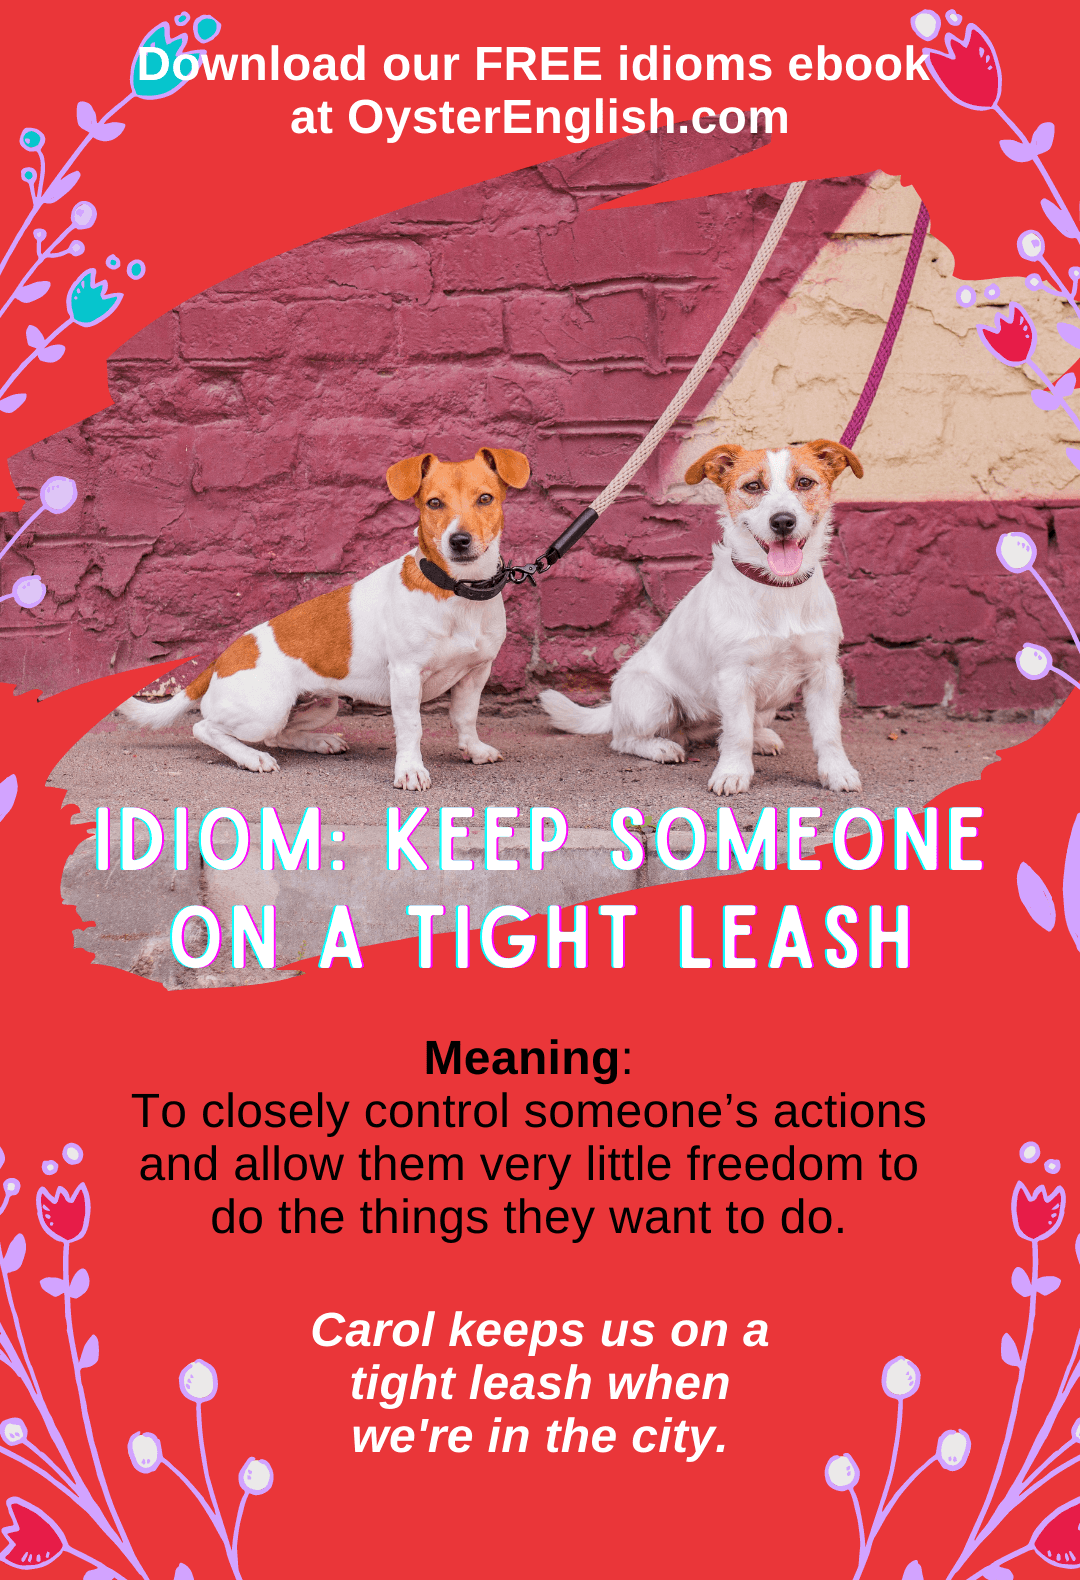 Two dogs are sitting outside and are tied up with leashes so they can't wander away: Carol keeps us on a tight leash when we're in the city.